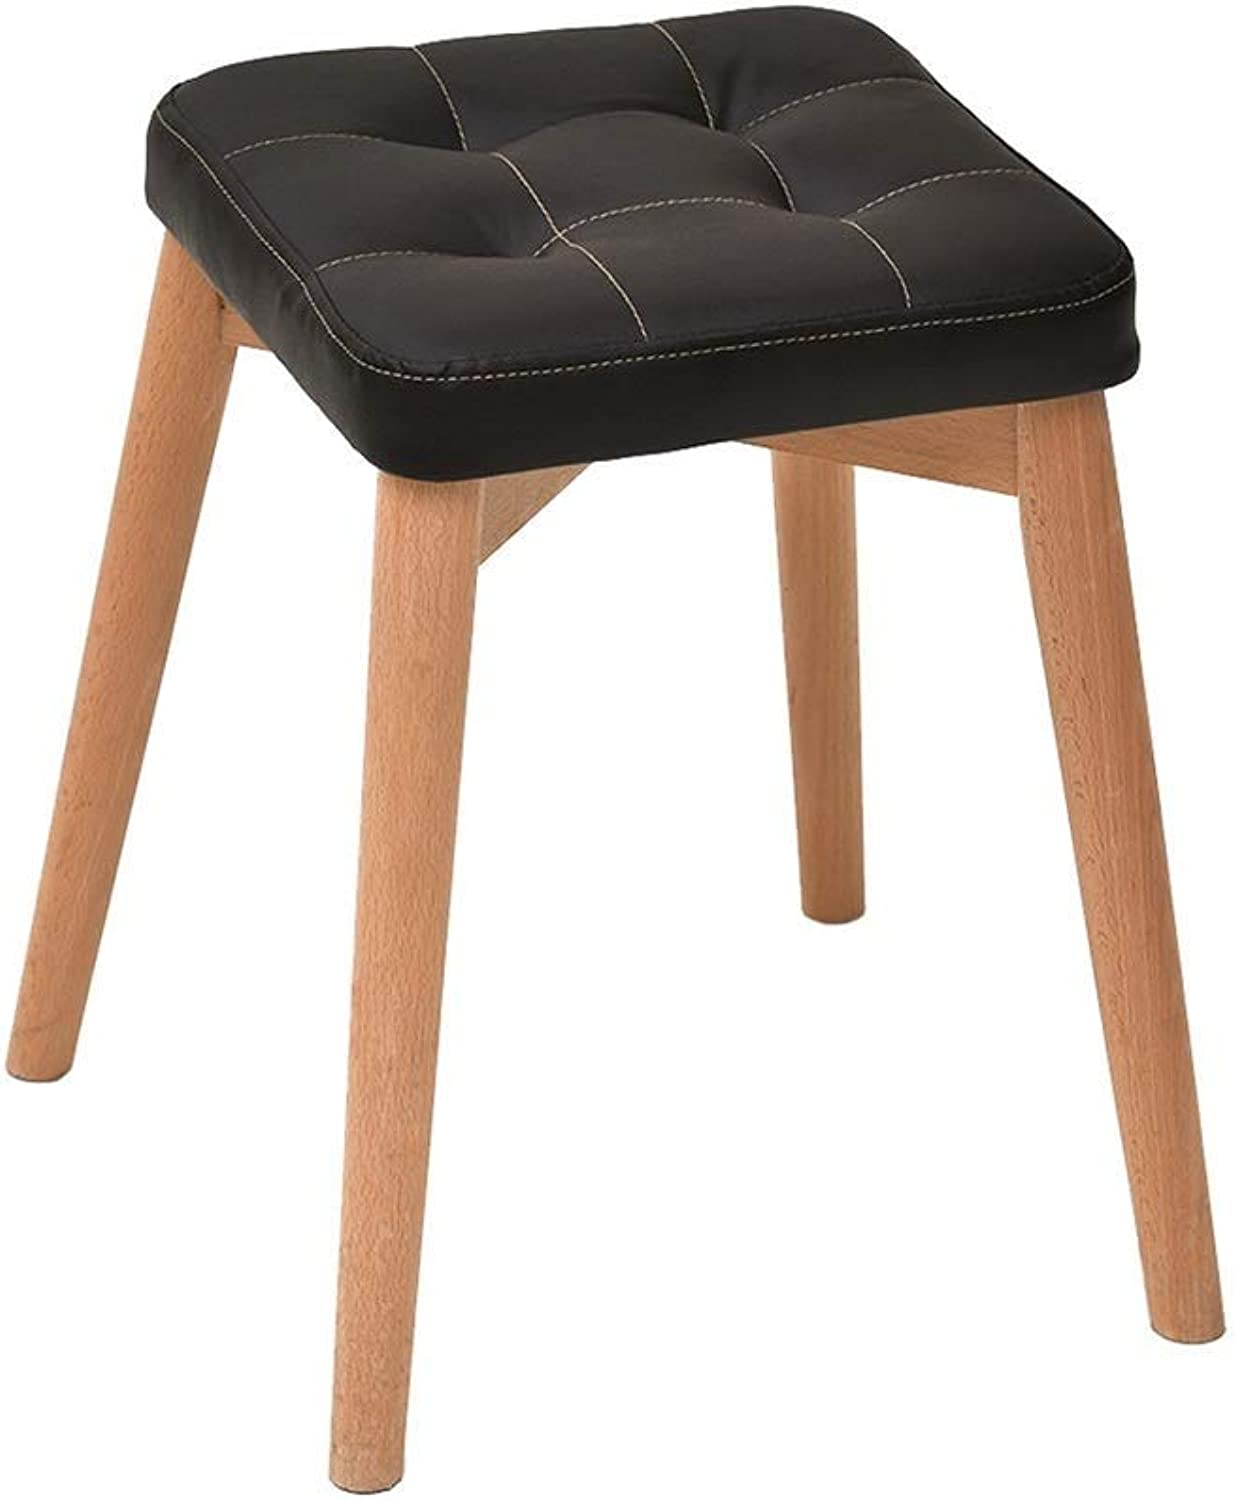 Stool Creative Fashion Bench Solid Wood Dressing Stool Chair for Kitchen Living Room Bathroom High Resilience Sponges Seat Nordic PU Upholstered HENGXIAO (color   Black)